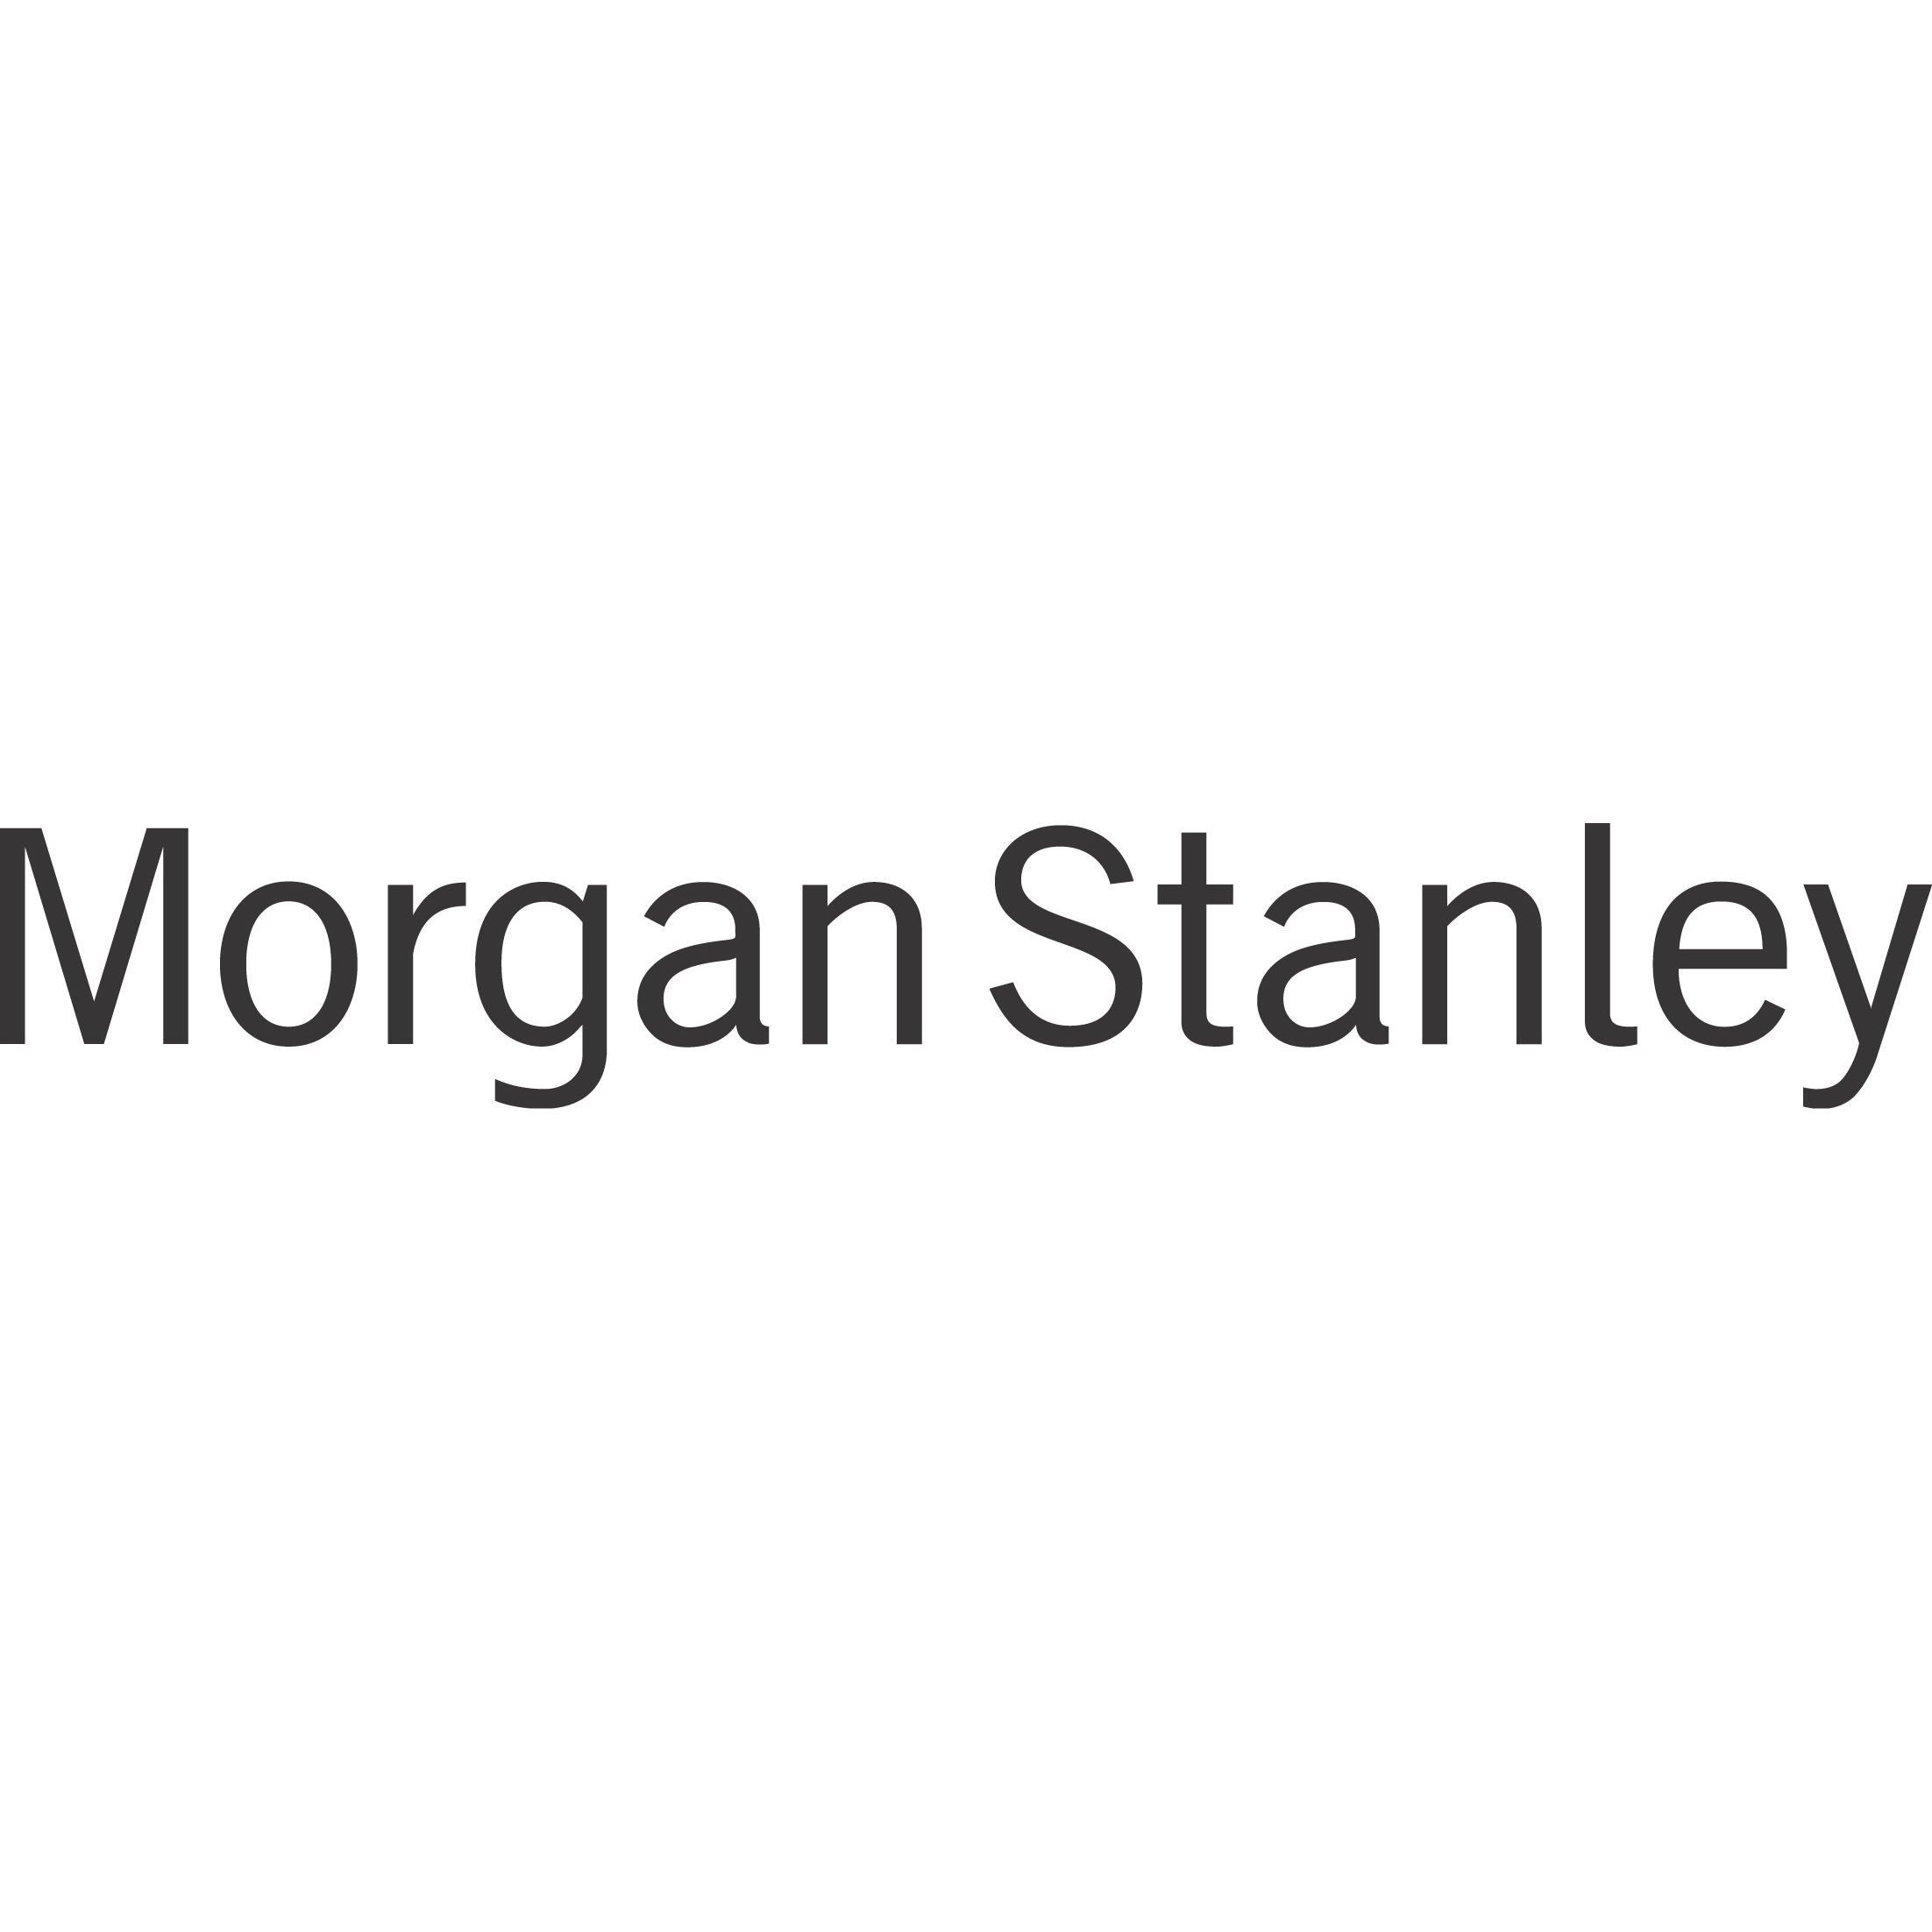 Morgan Stanley | Financial Advisor in Federal Way,Washington